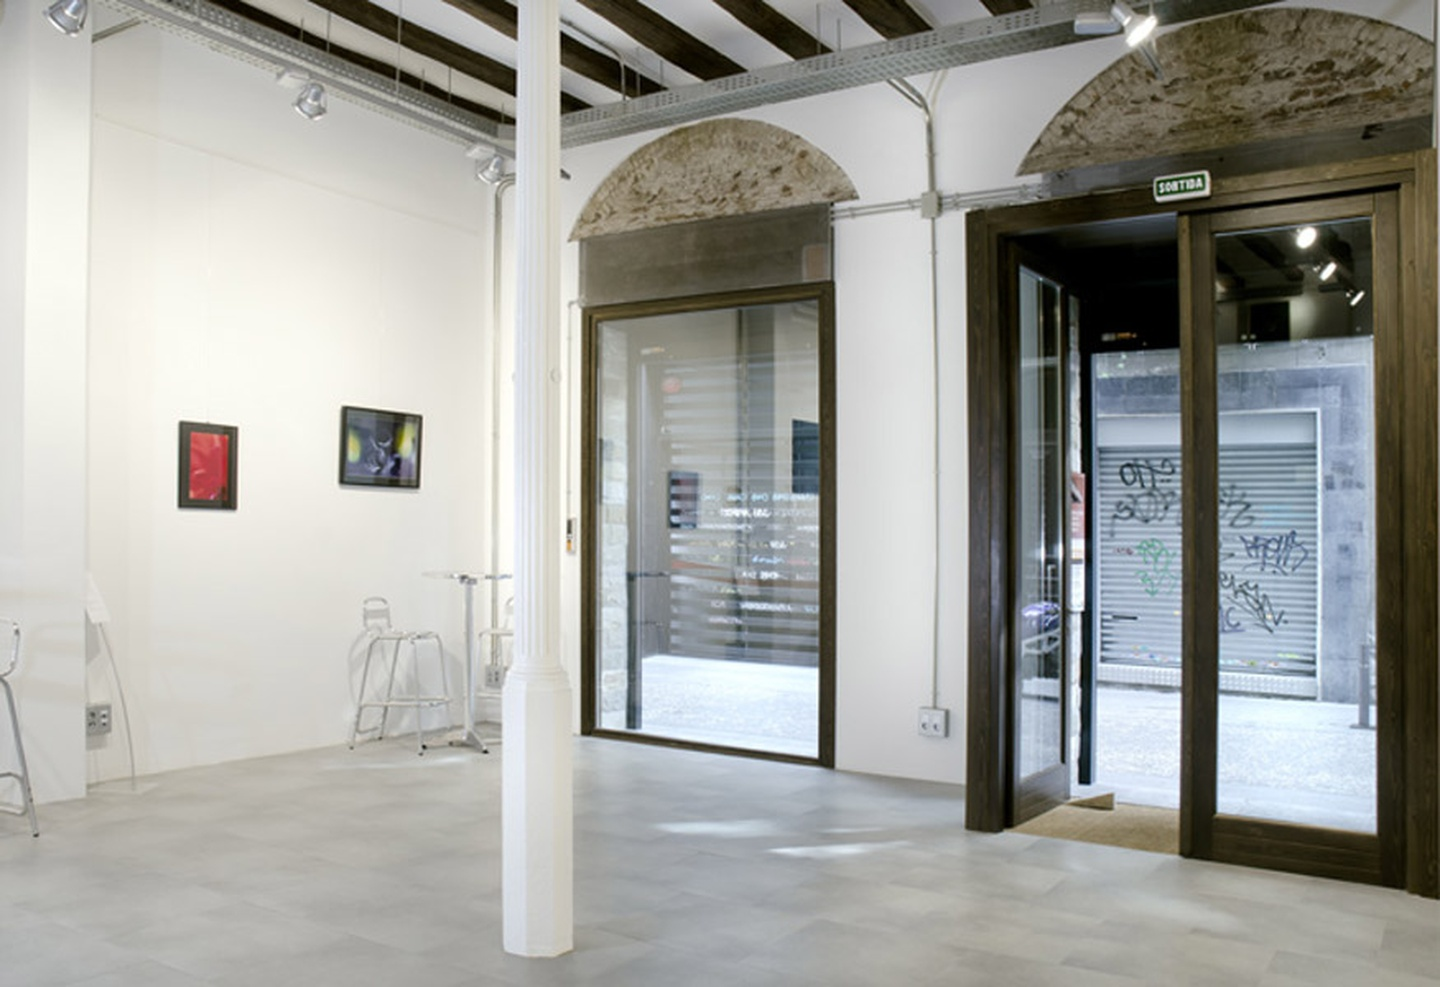 Barcelona workshop spaces Meeting room Mezanina - 2nd Floor Main Room image 2